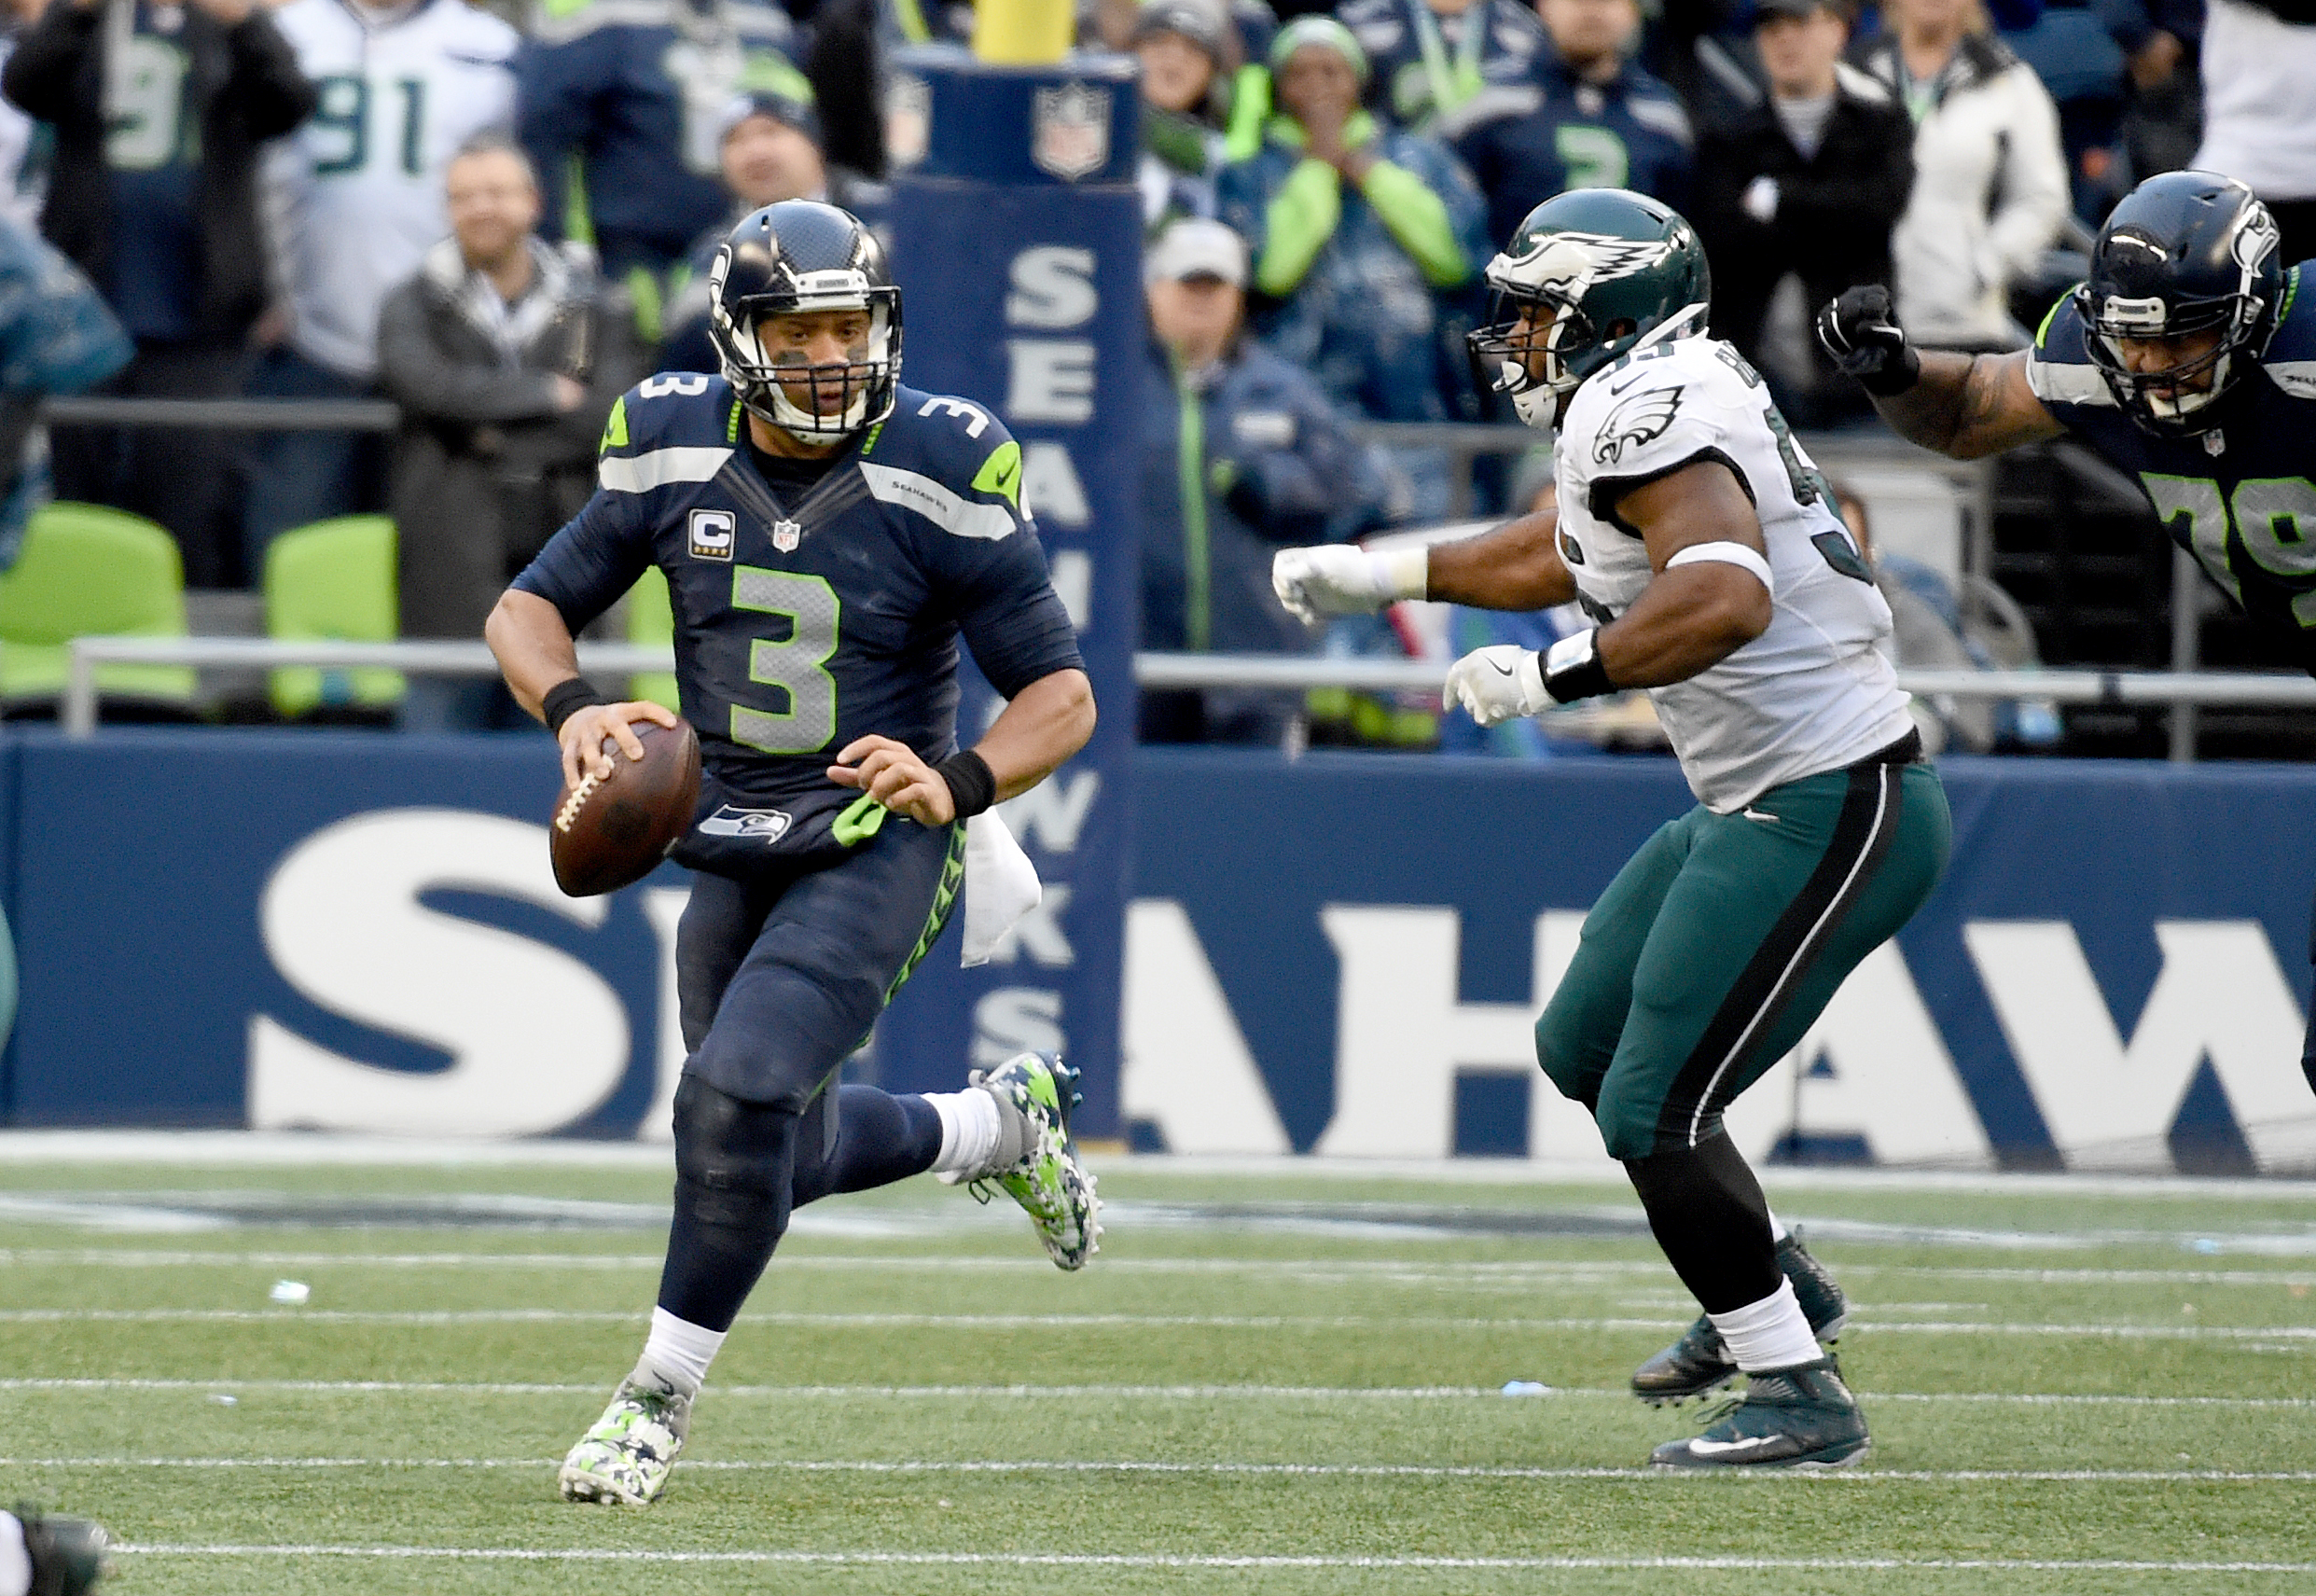 Eagles Vs Seahawks Preview Score Prediction For Week 13